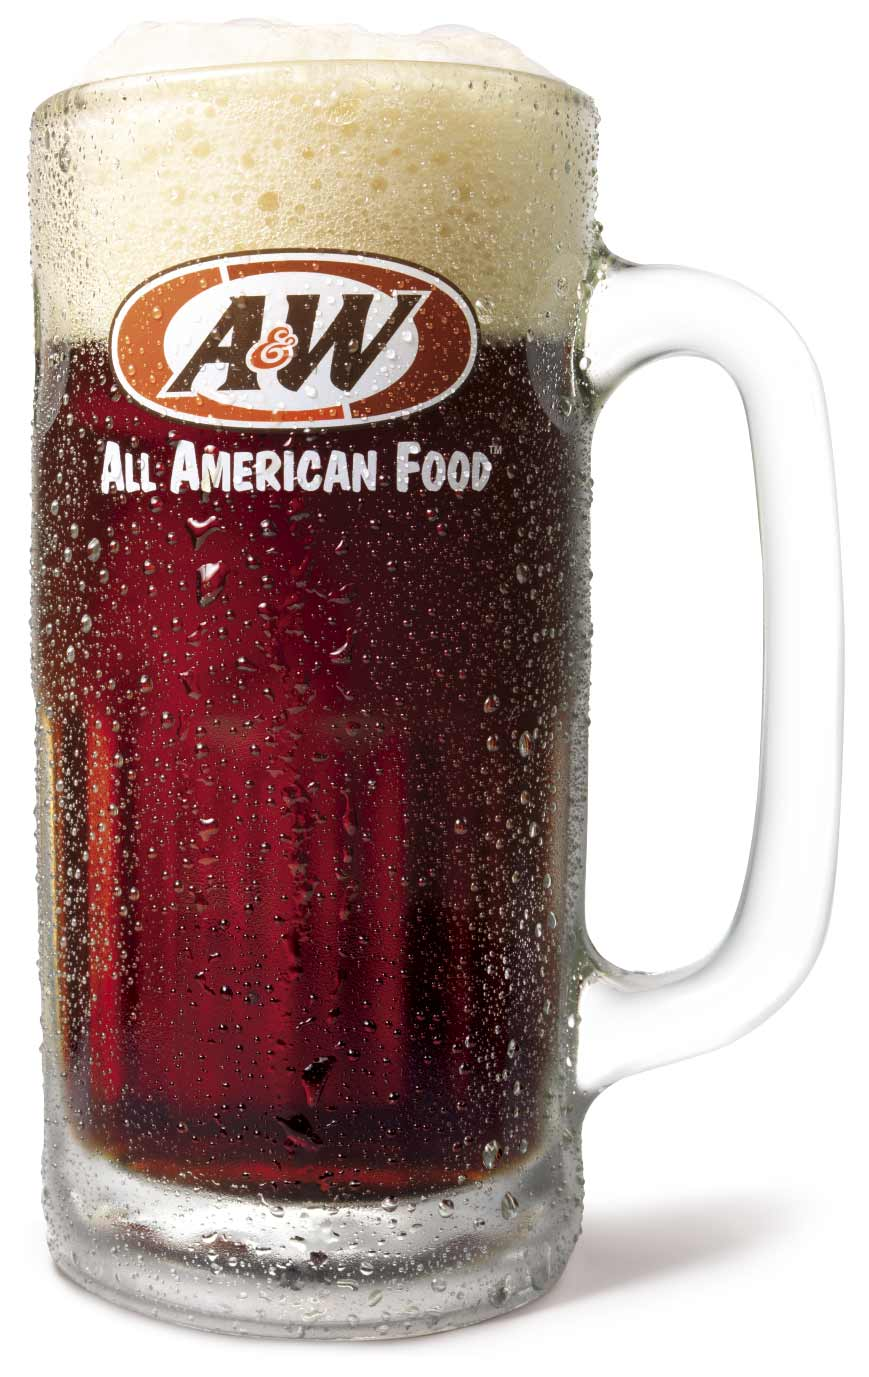 A&W All-American Food, Greensburg IN